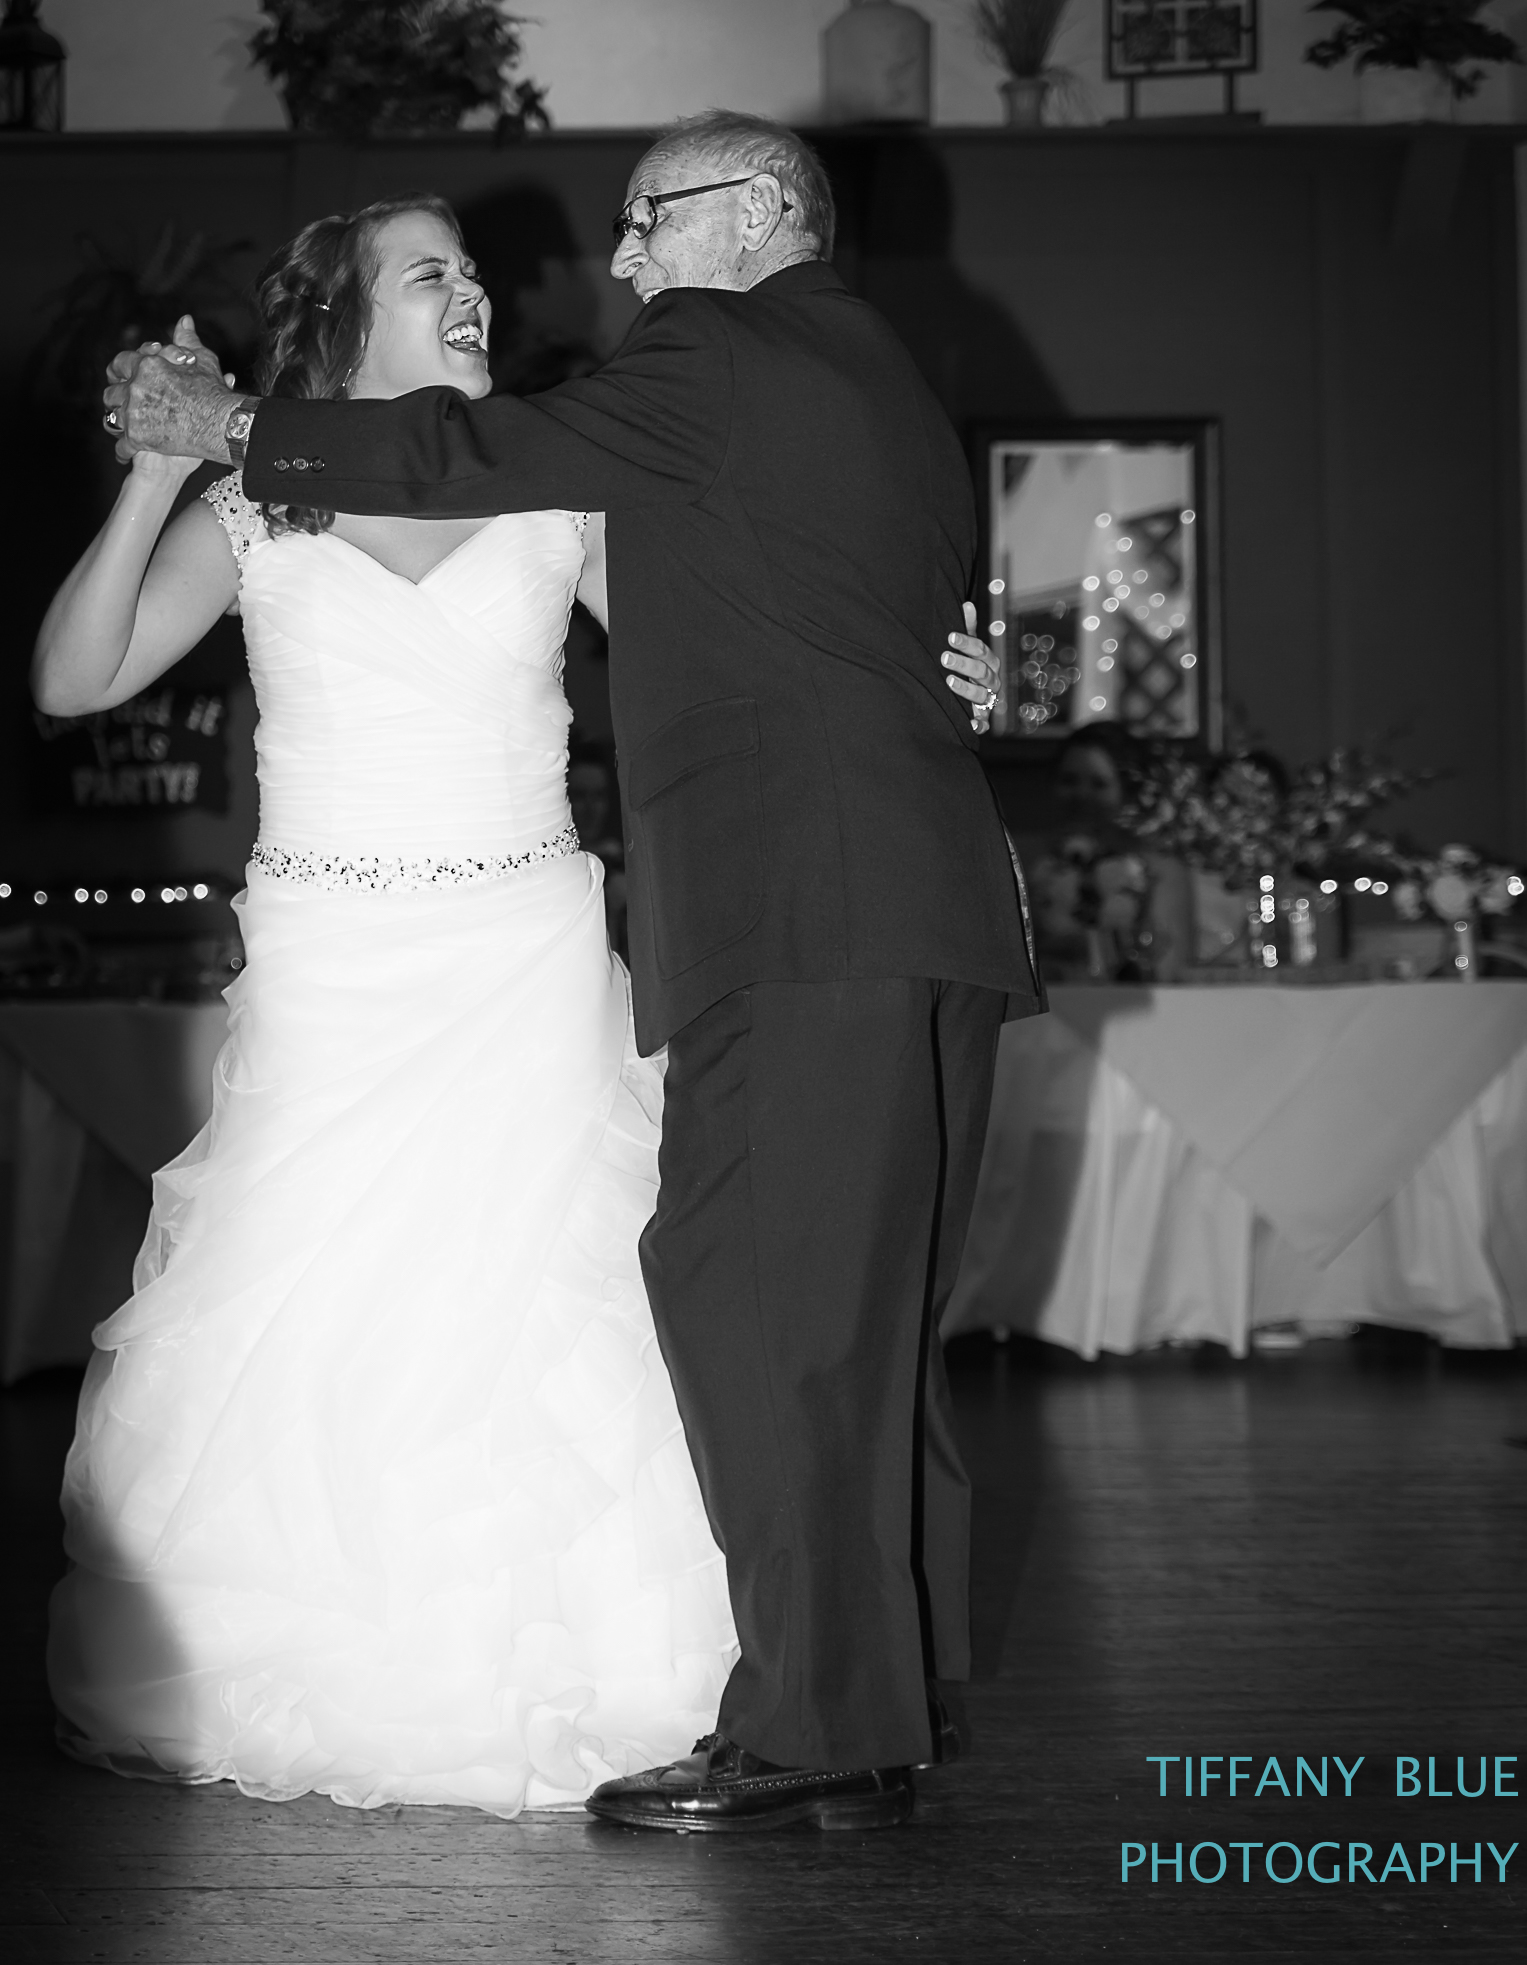 Chris & Nicole's Wedding (59 of 76).jpg